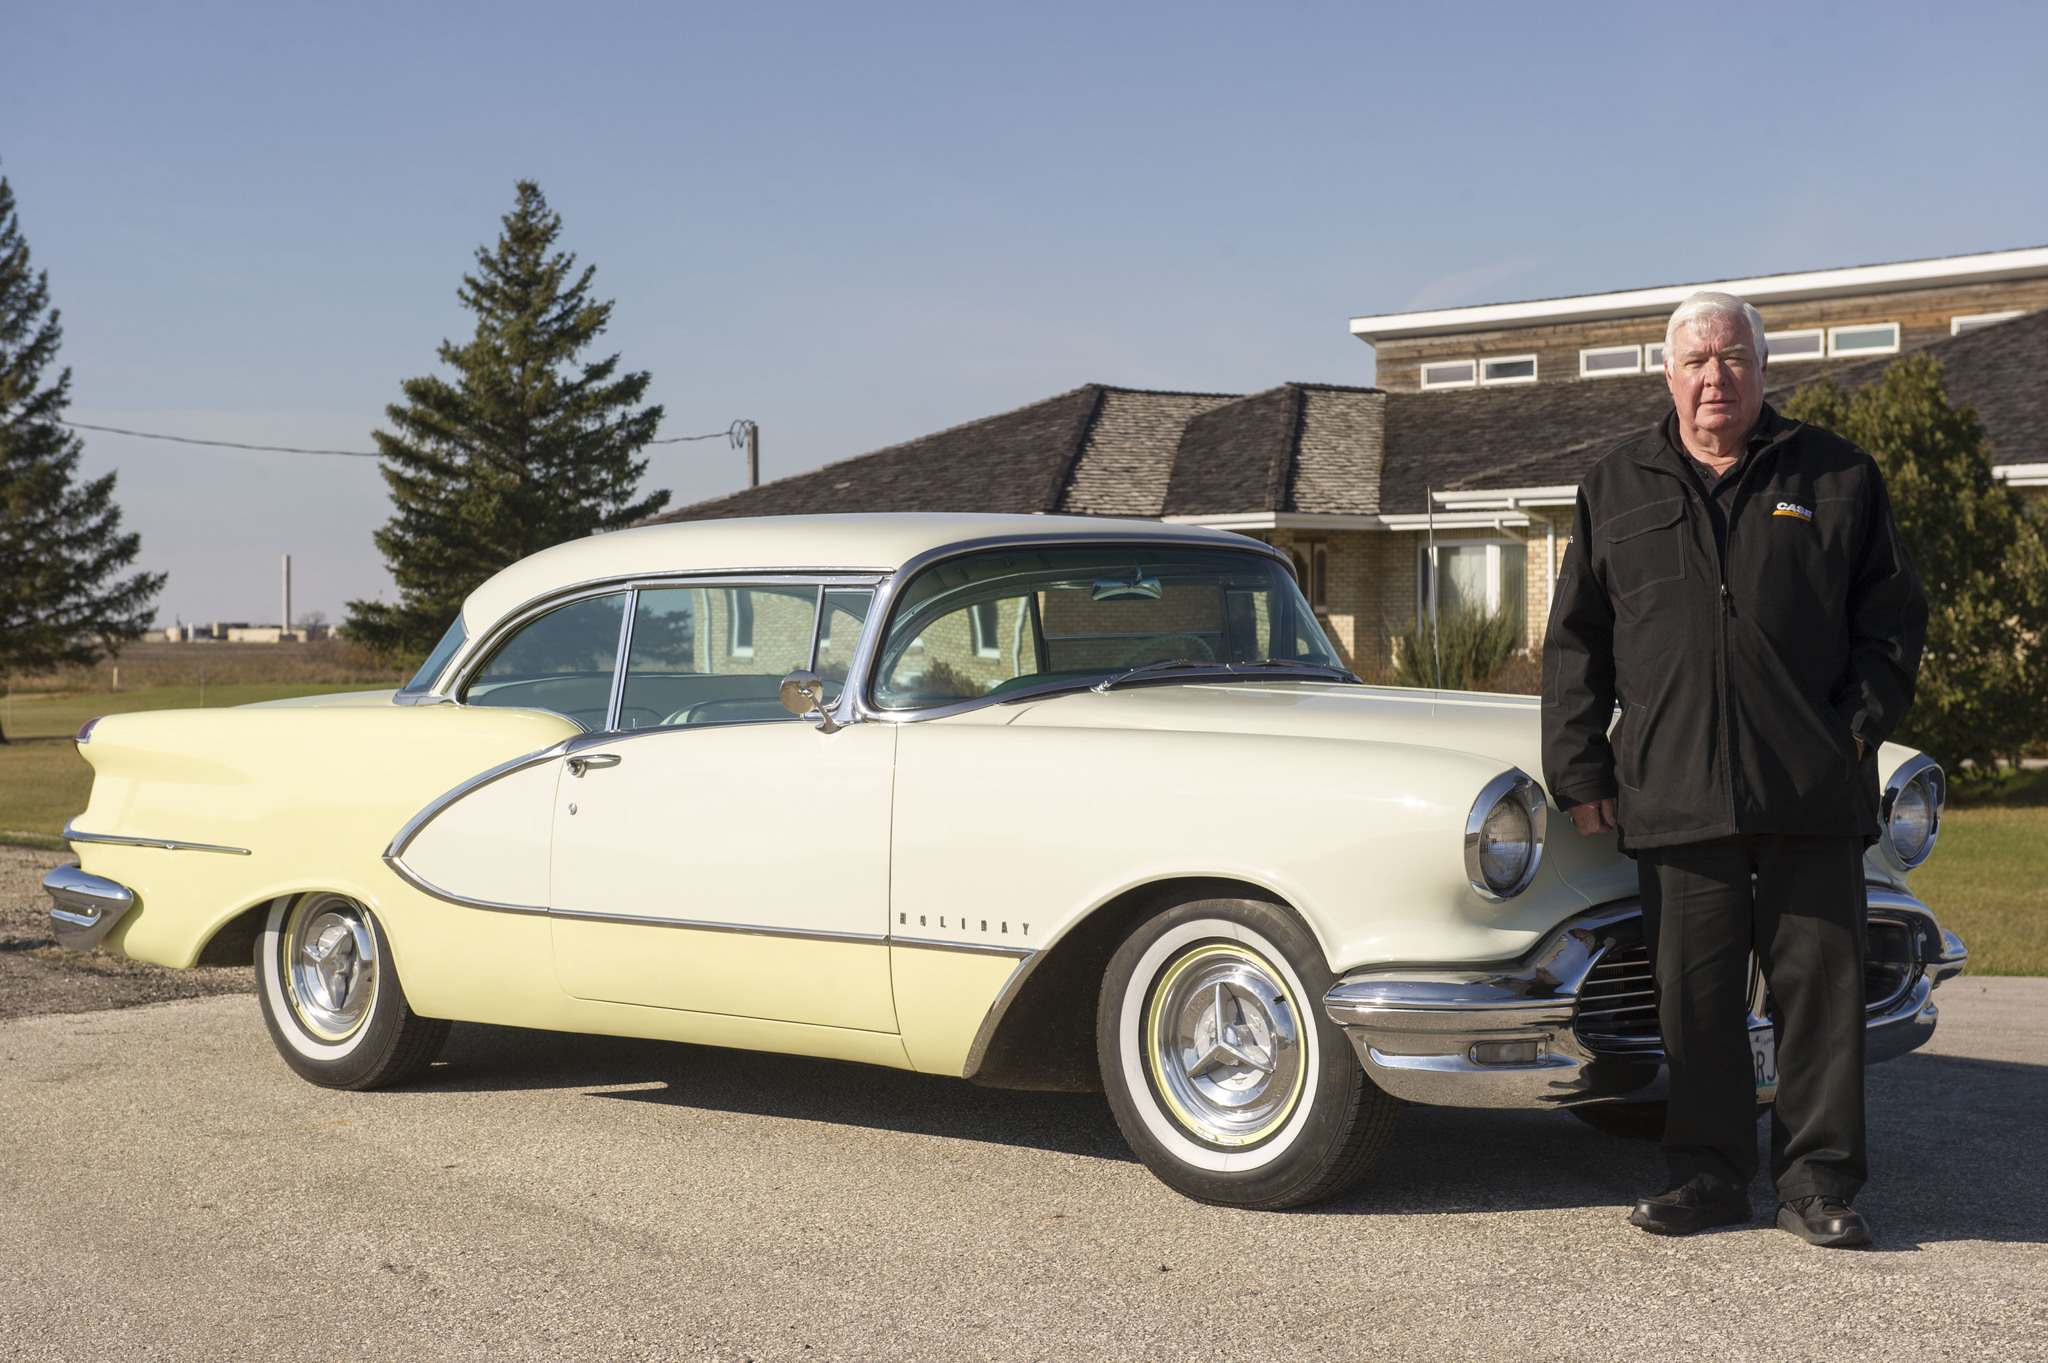 Winnipeg's Don Scharf grew up with Oldsmobiles and had been looking for a 98 Holiday for quite some time before he bought it in 2010.